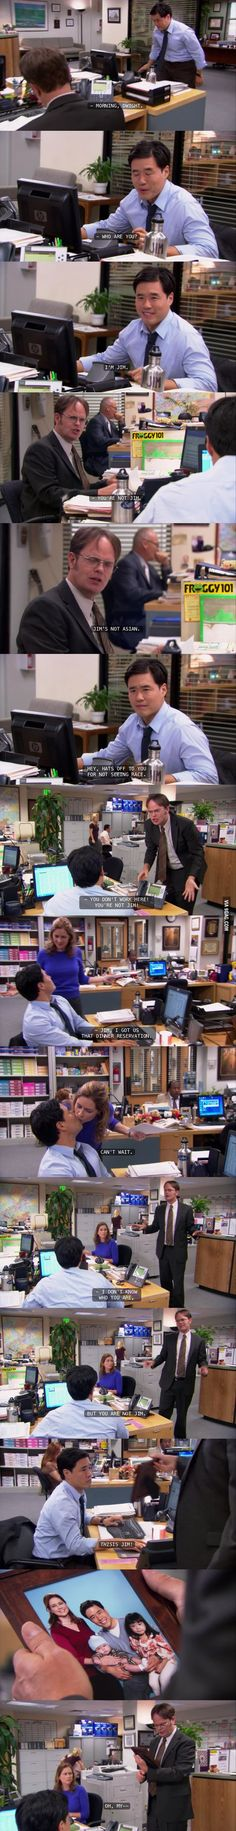 I loved this. The Office. Imagine the planning that would have to go into something like this...